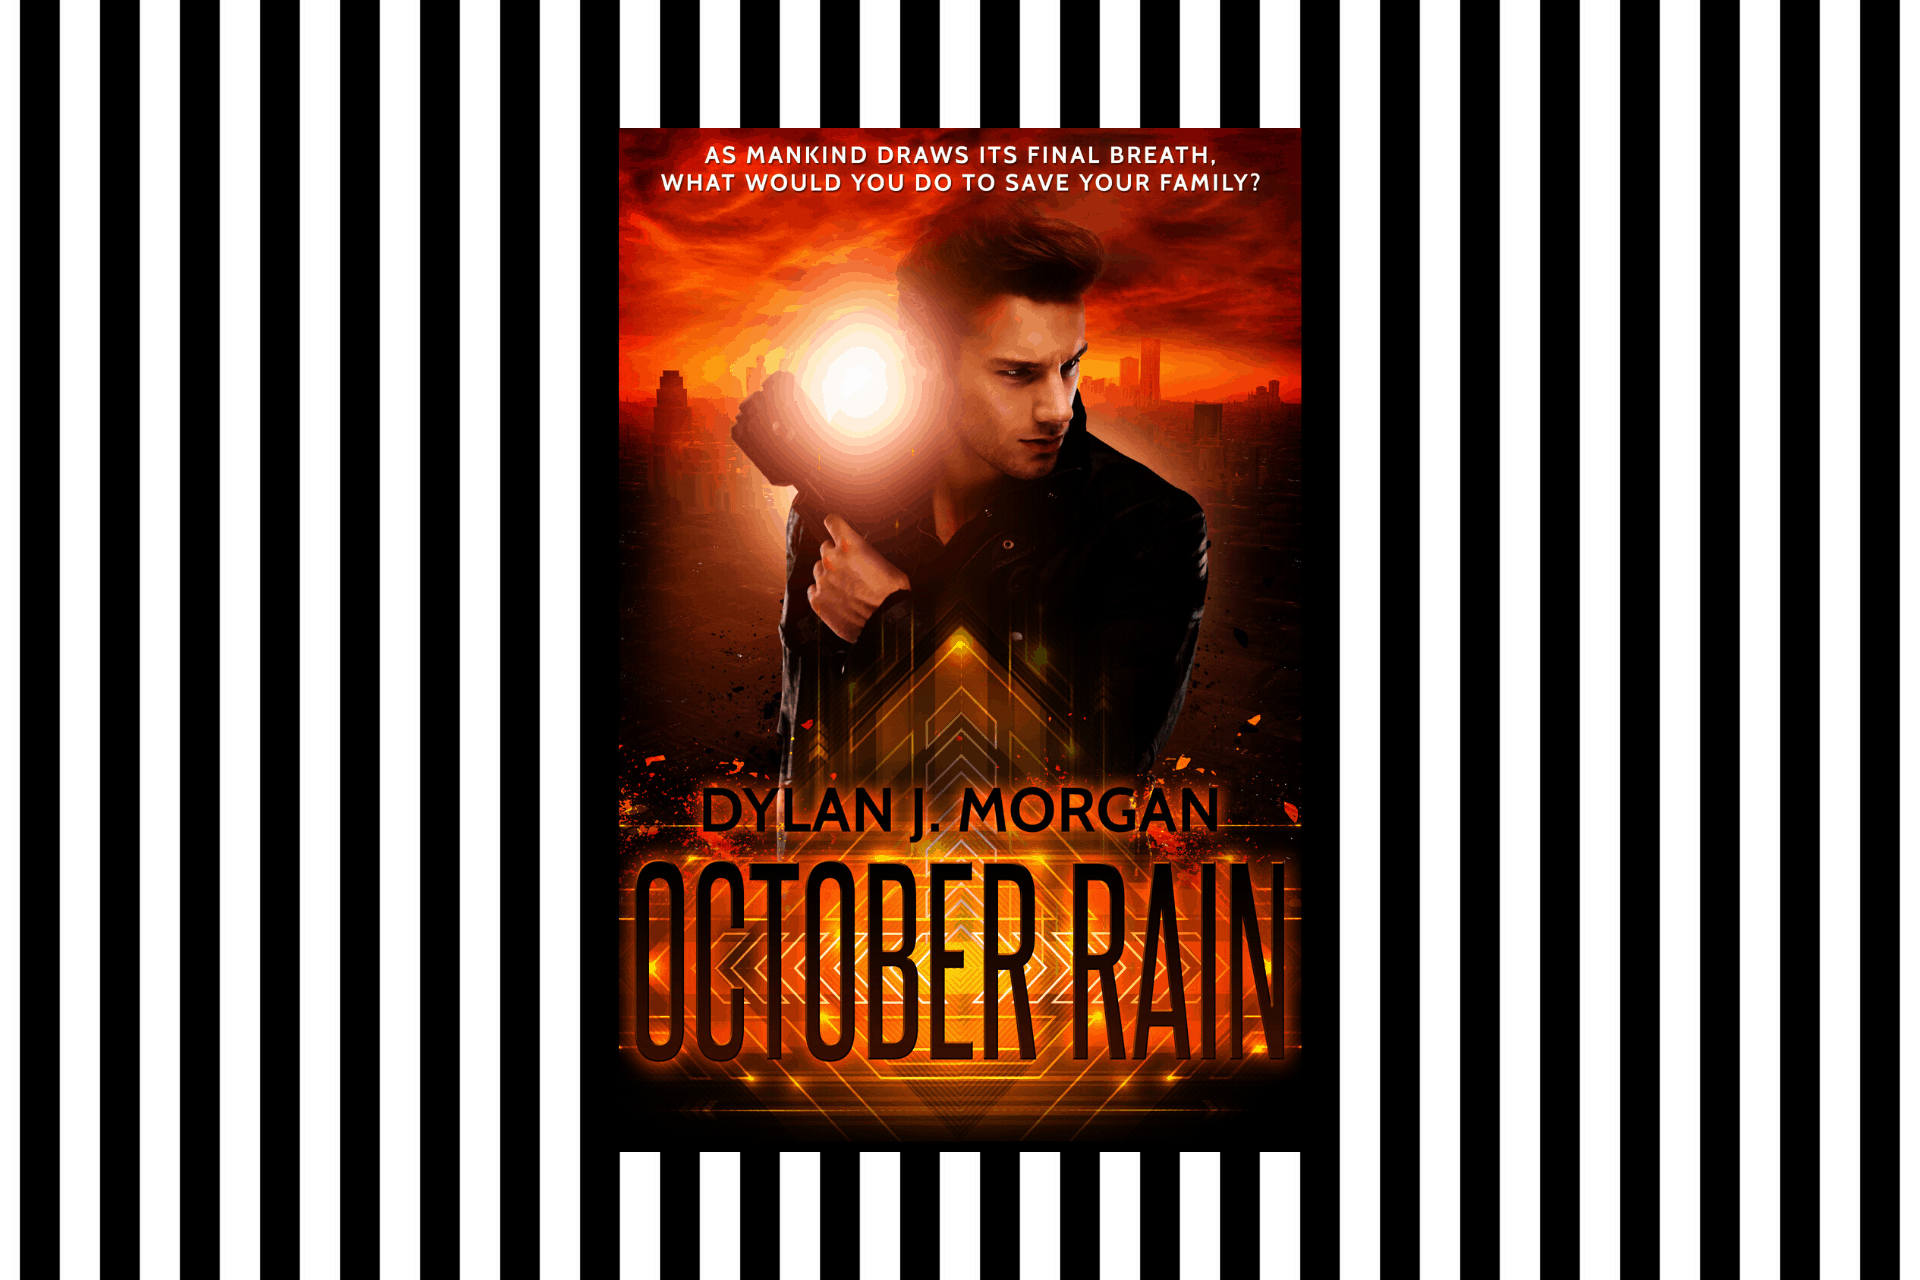 The cover of October Rain by Dylan J Morgan